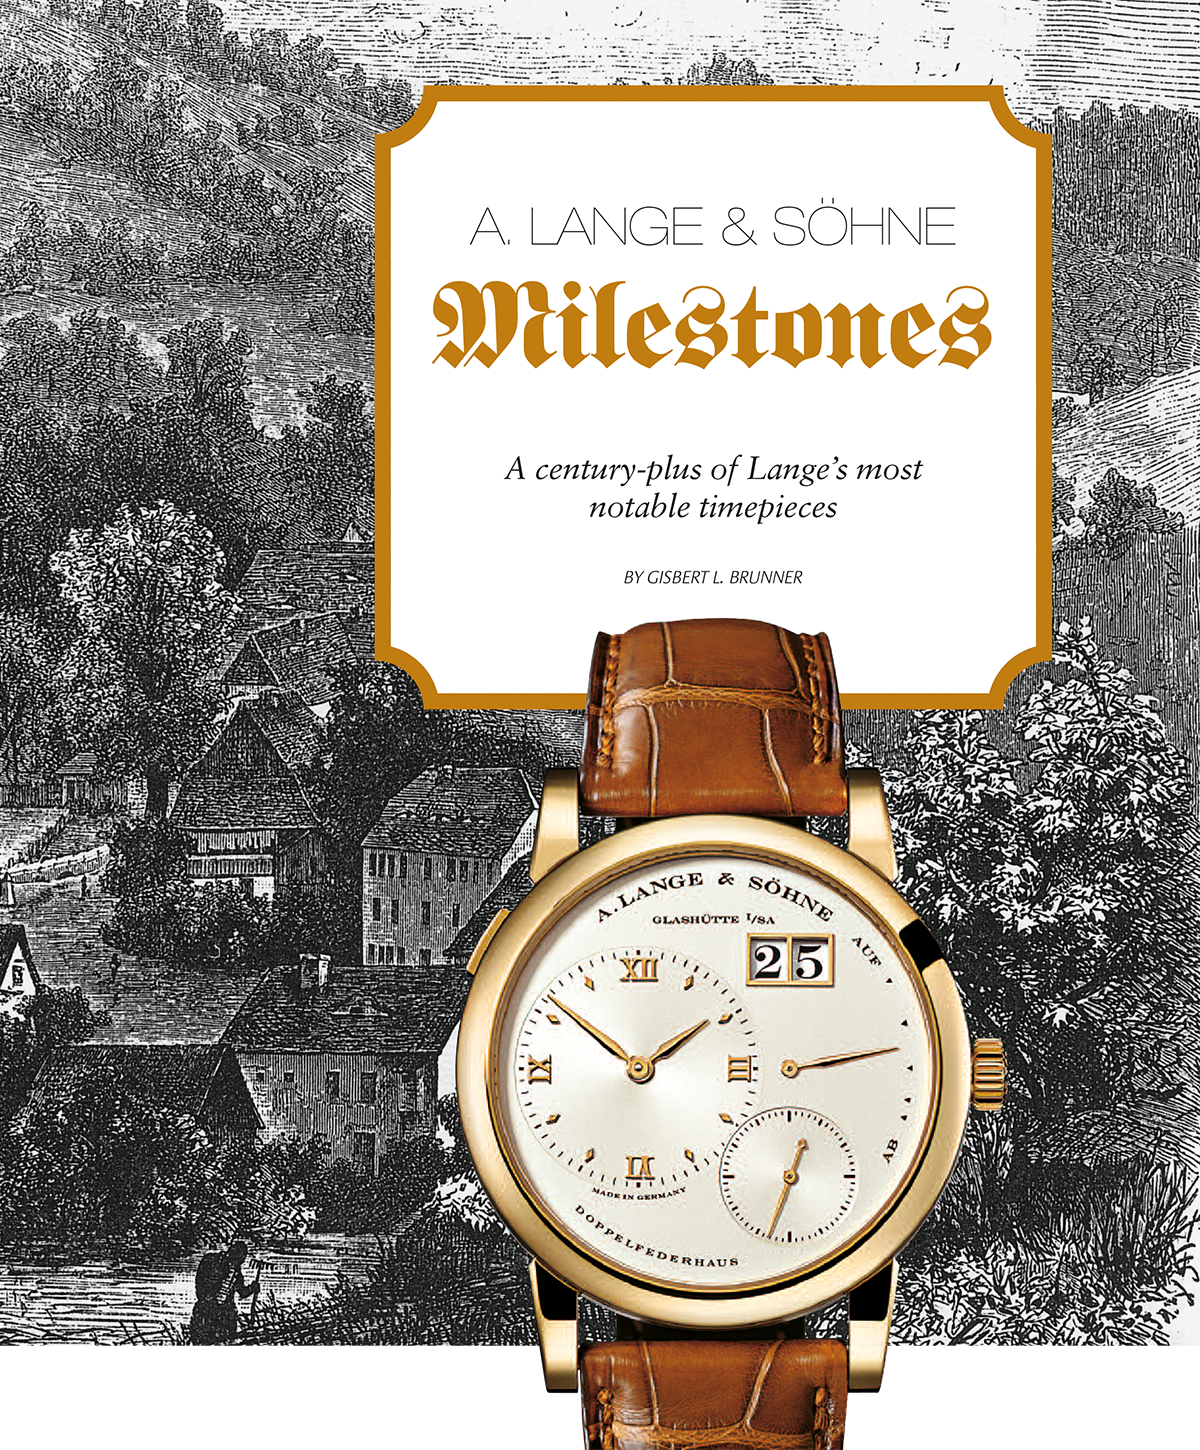 Lange & Söhne watches